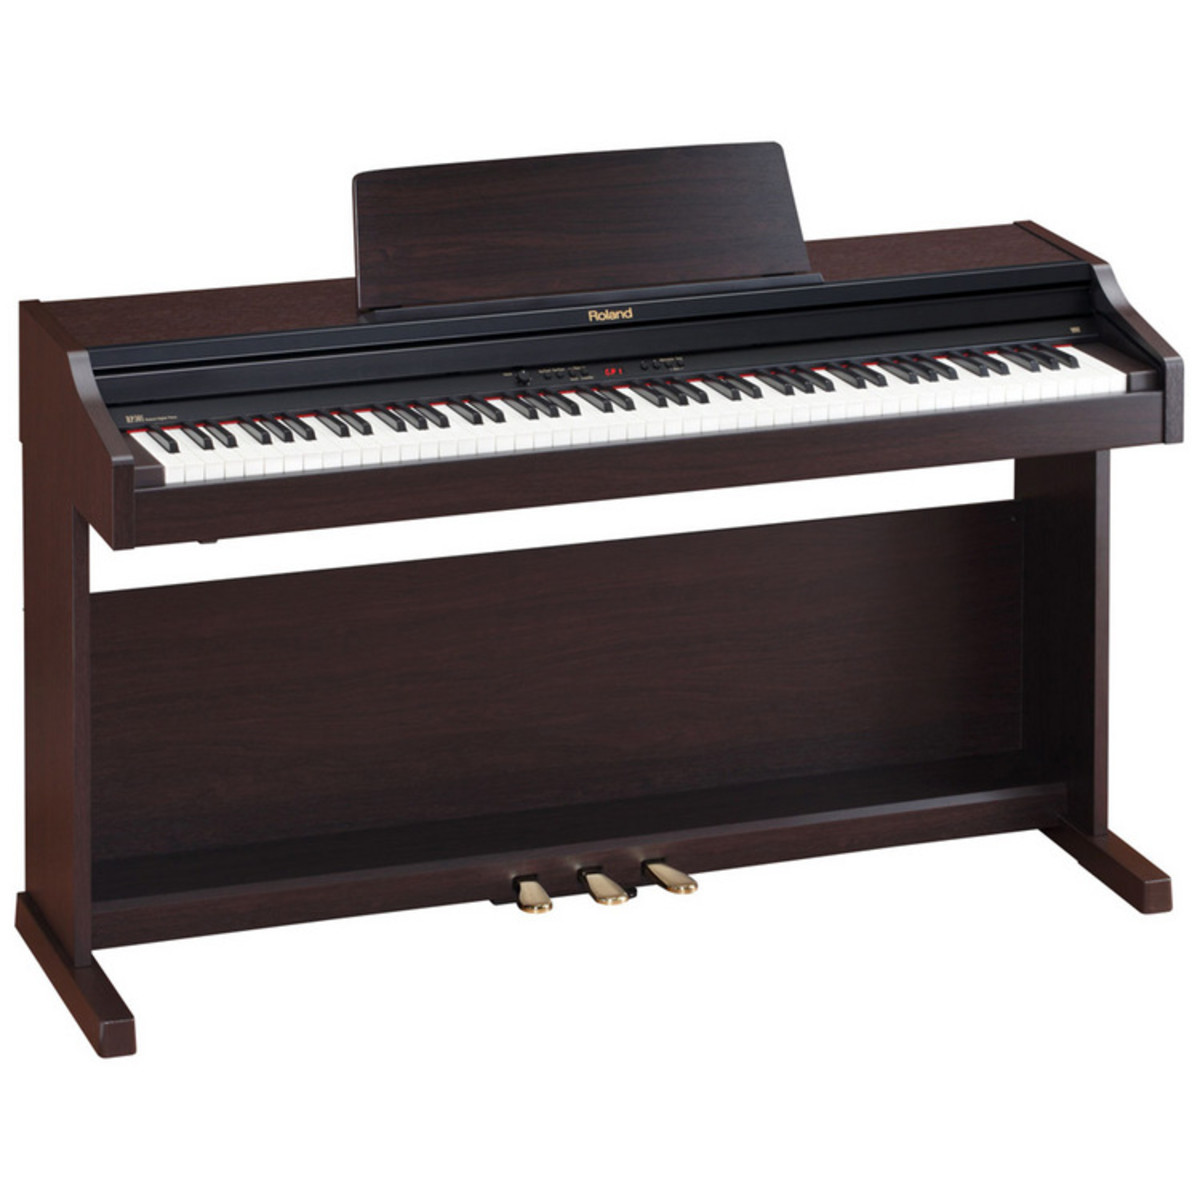 roland rp 301 digital piano rosewood ex demo at gear4music. Black Bedroom Furniture Sets. Home Design Ideas